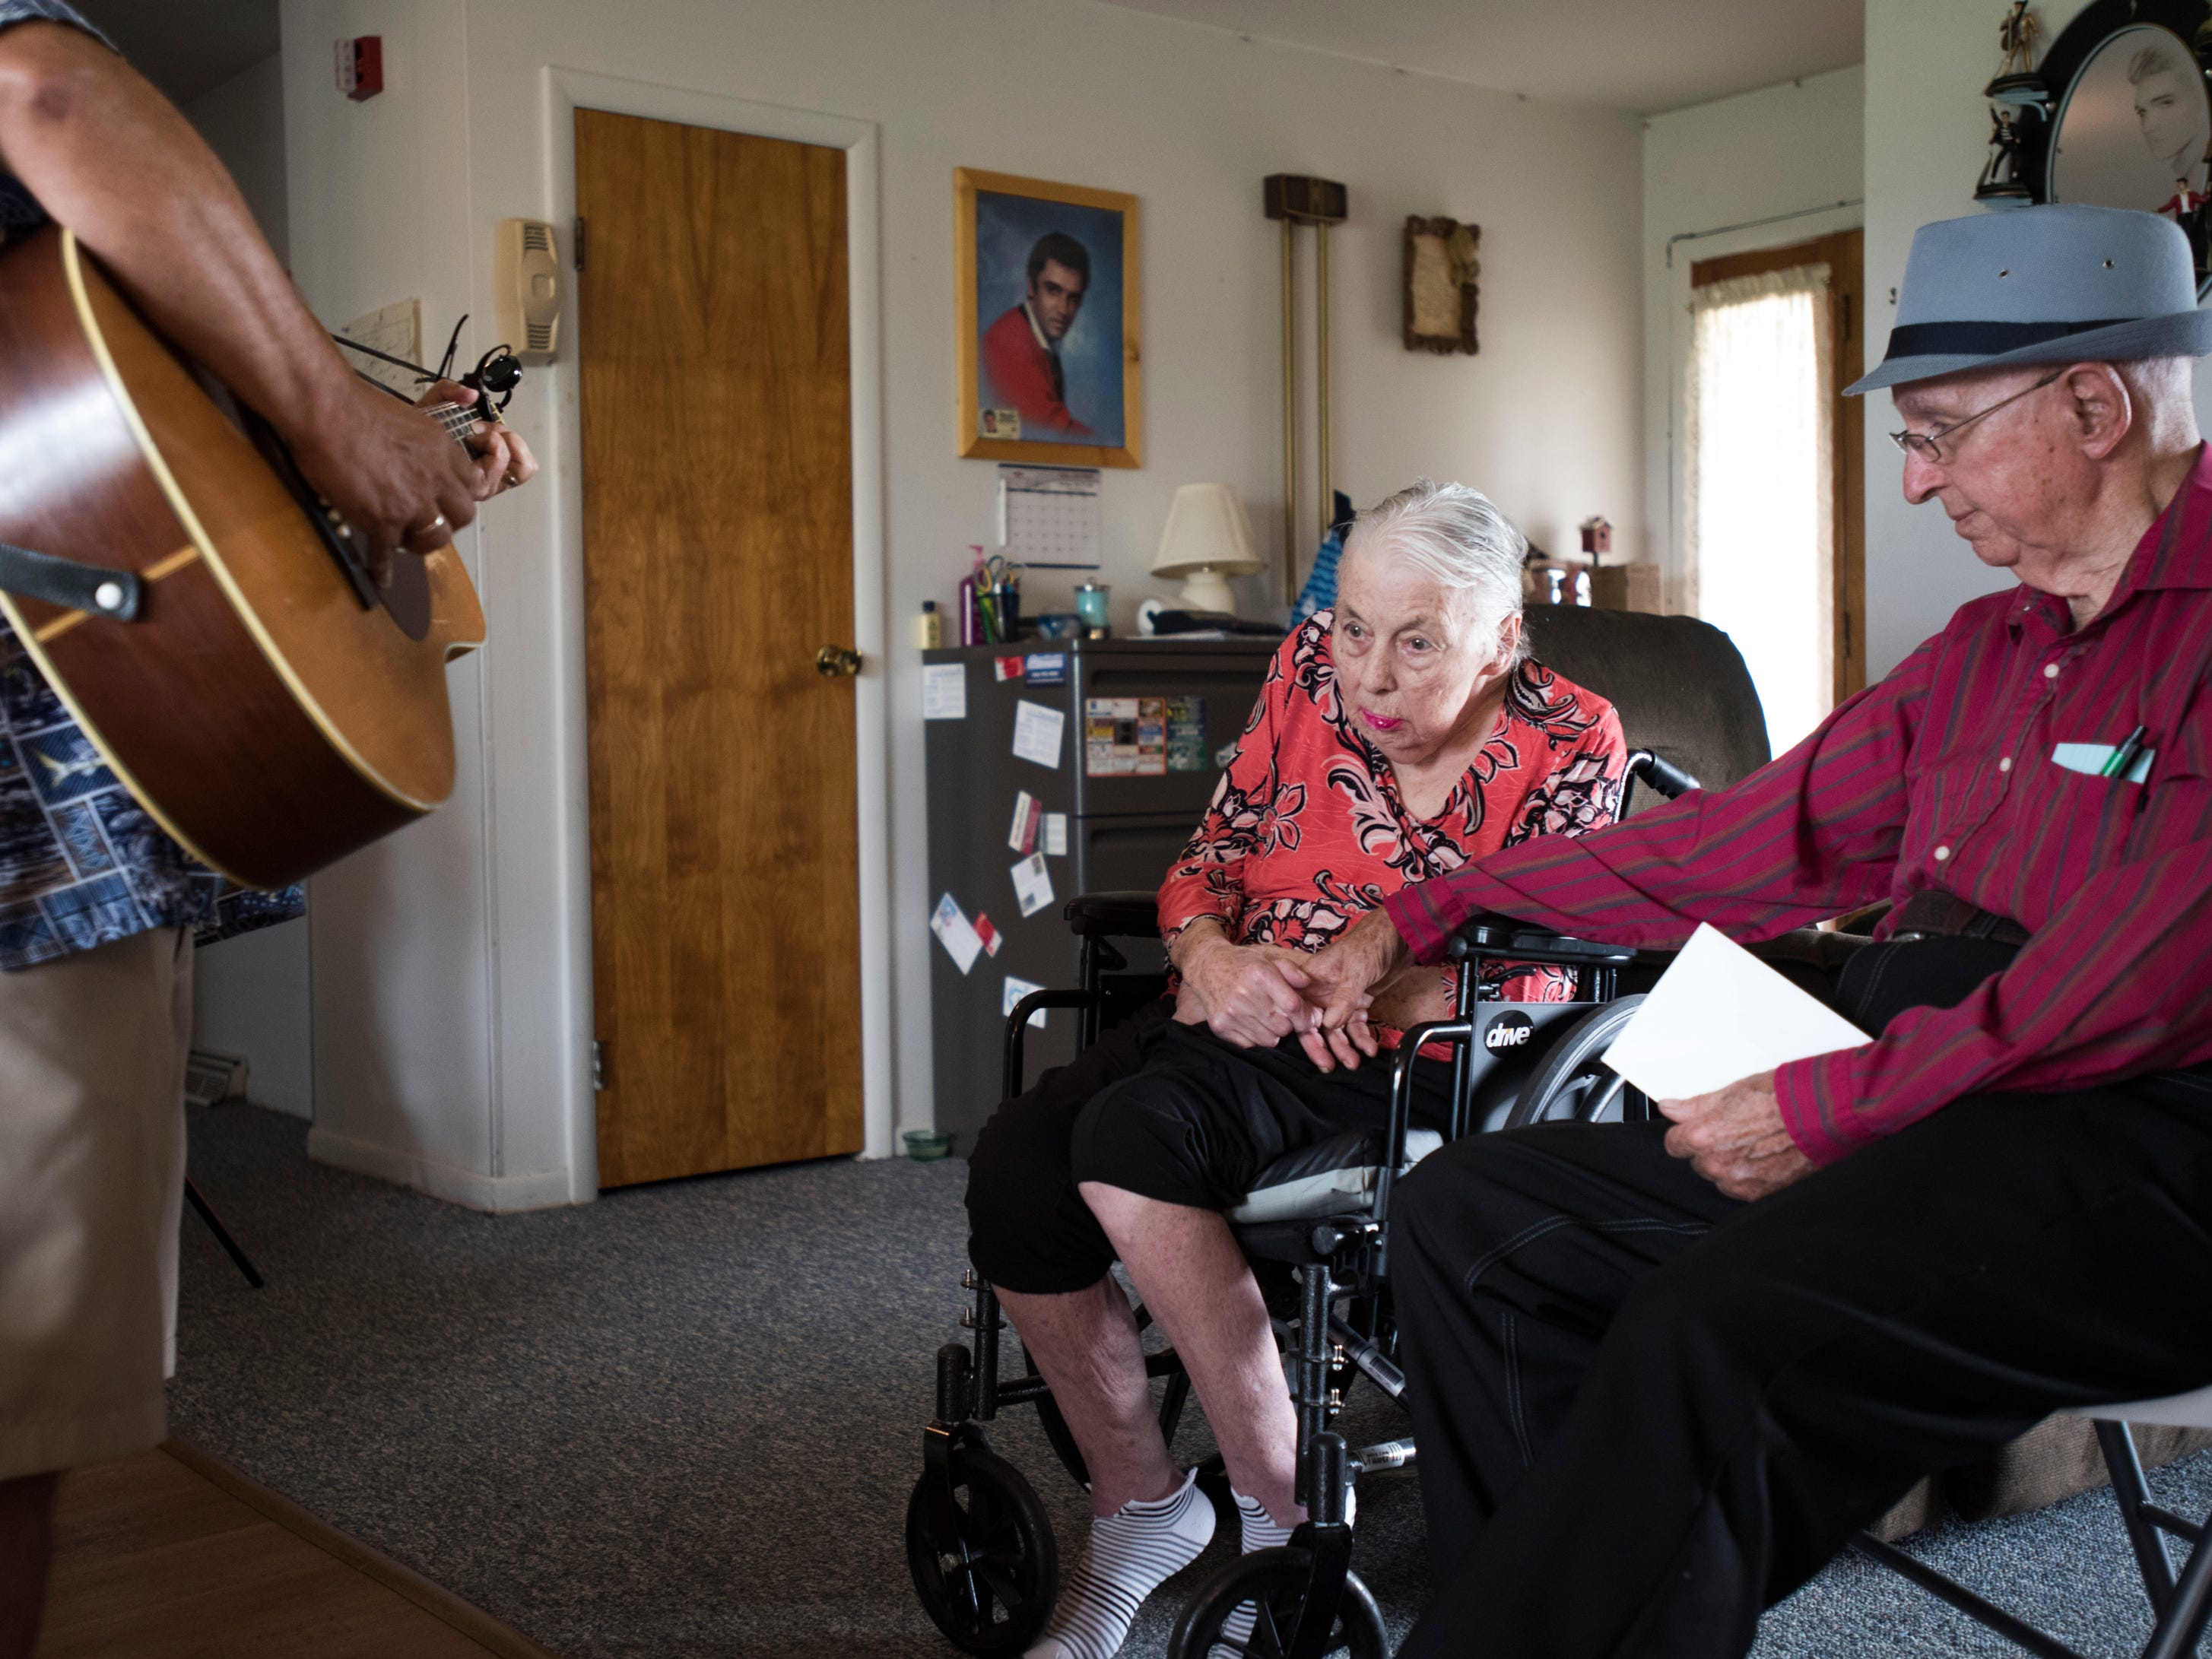 Don West, 90, right, of Eaton Rapids, sits with his wife Jackie, Tuesday afternoon, Aug. 21, 2018, at Golden Days II Adult Foster Care in Charlotte, Michigan during their 64th wedding anniversary party while musician  Dennis Michaels of Lansing plays music for them.  Don has planned the anniversary party for months.